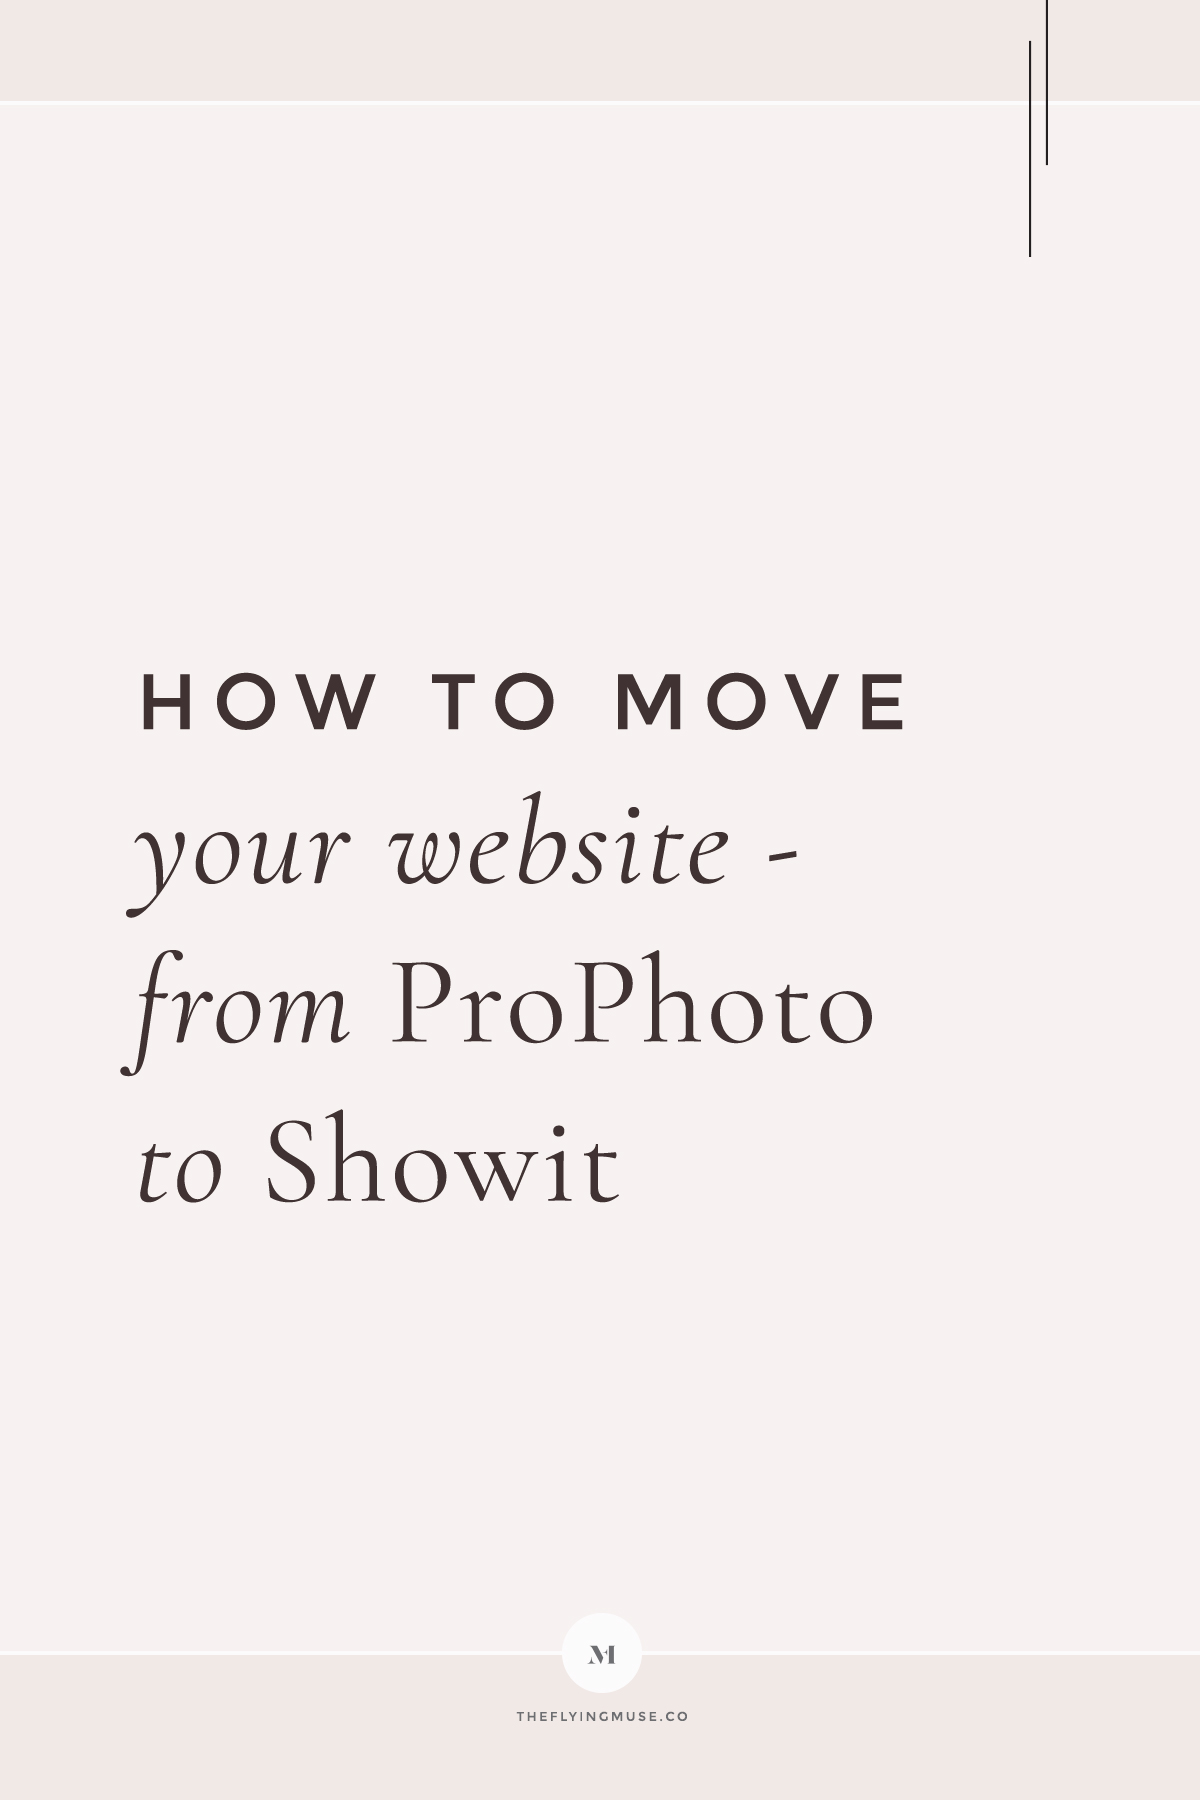 How to move your website from ProPhoto to Showit